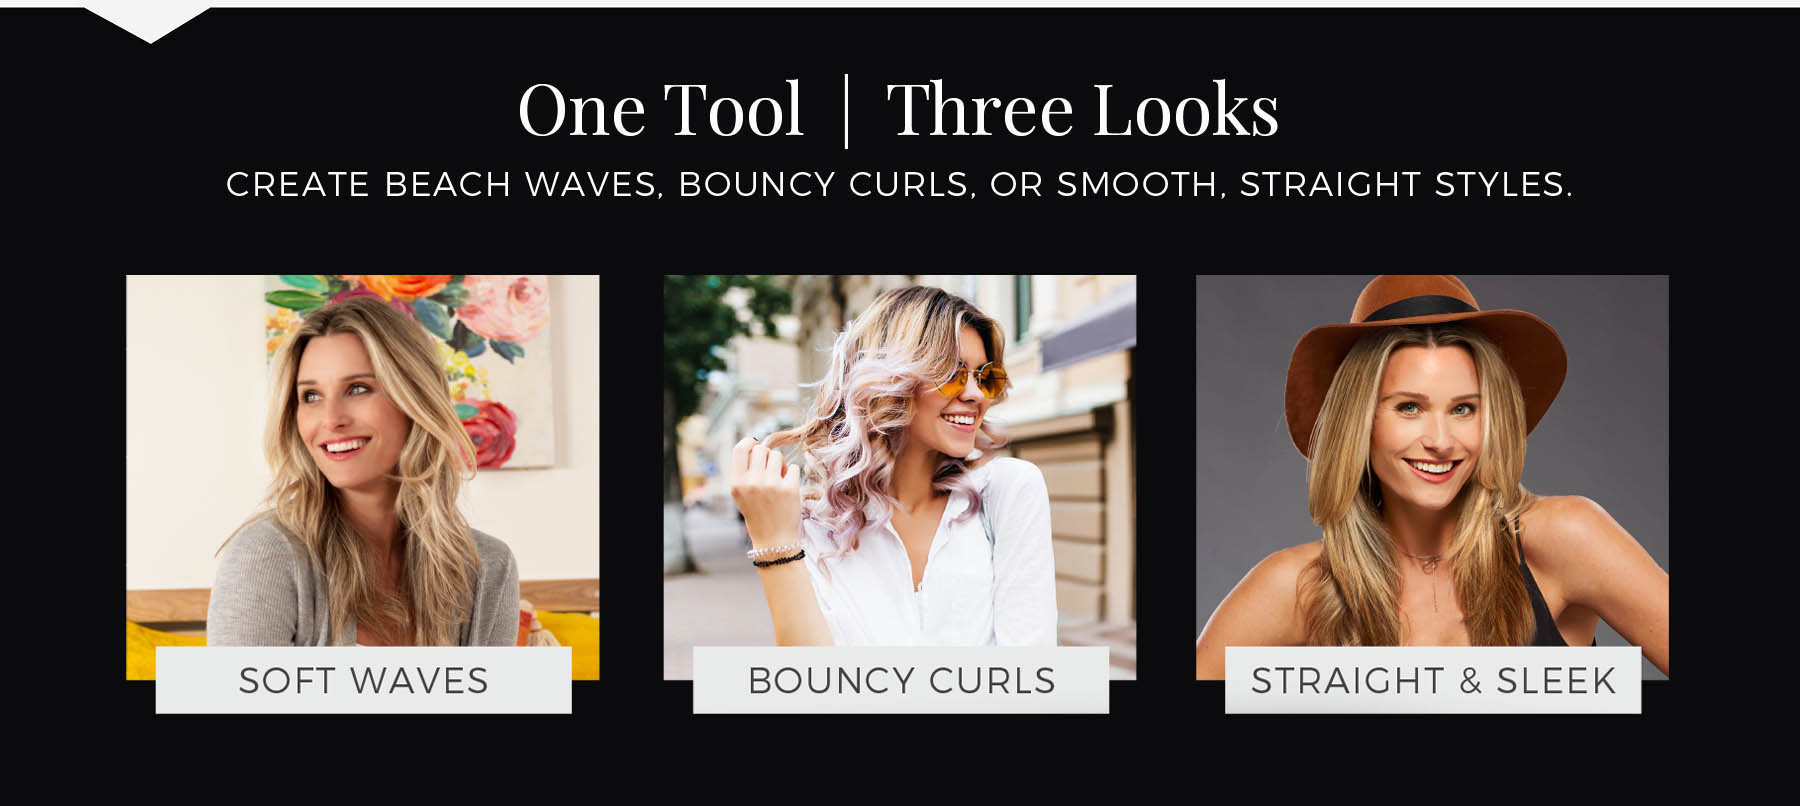 One Tool | Three Looks. CREATE BEACH WAVES, BOUNCY CURLS, OR SMOOTH, STRAIGHT STYLES.